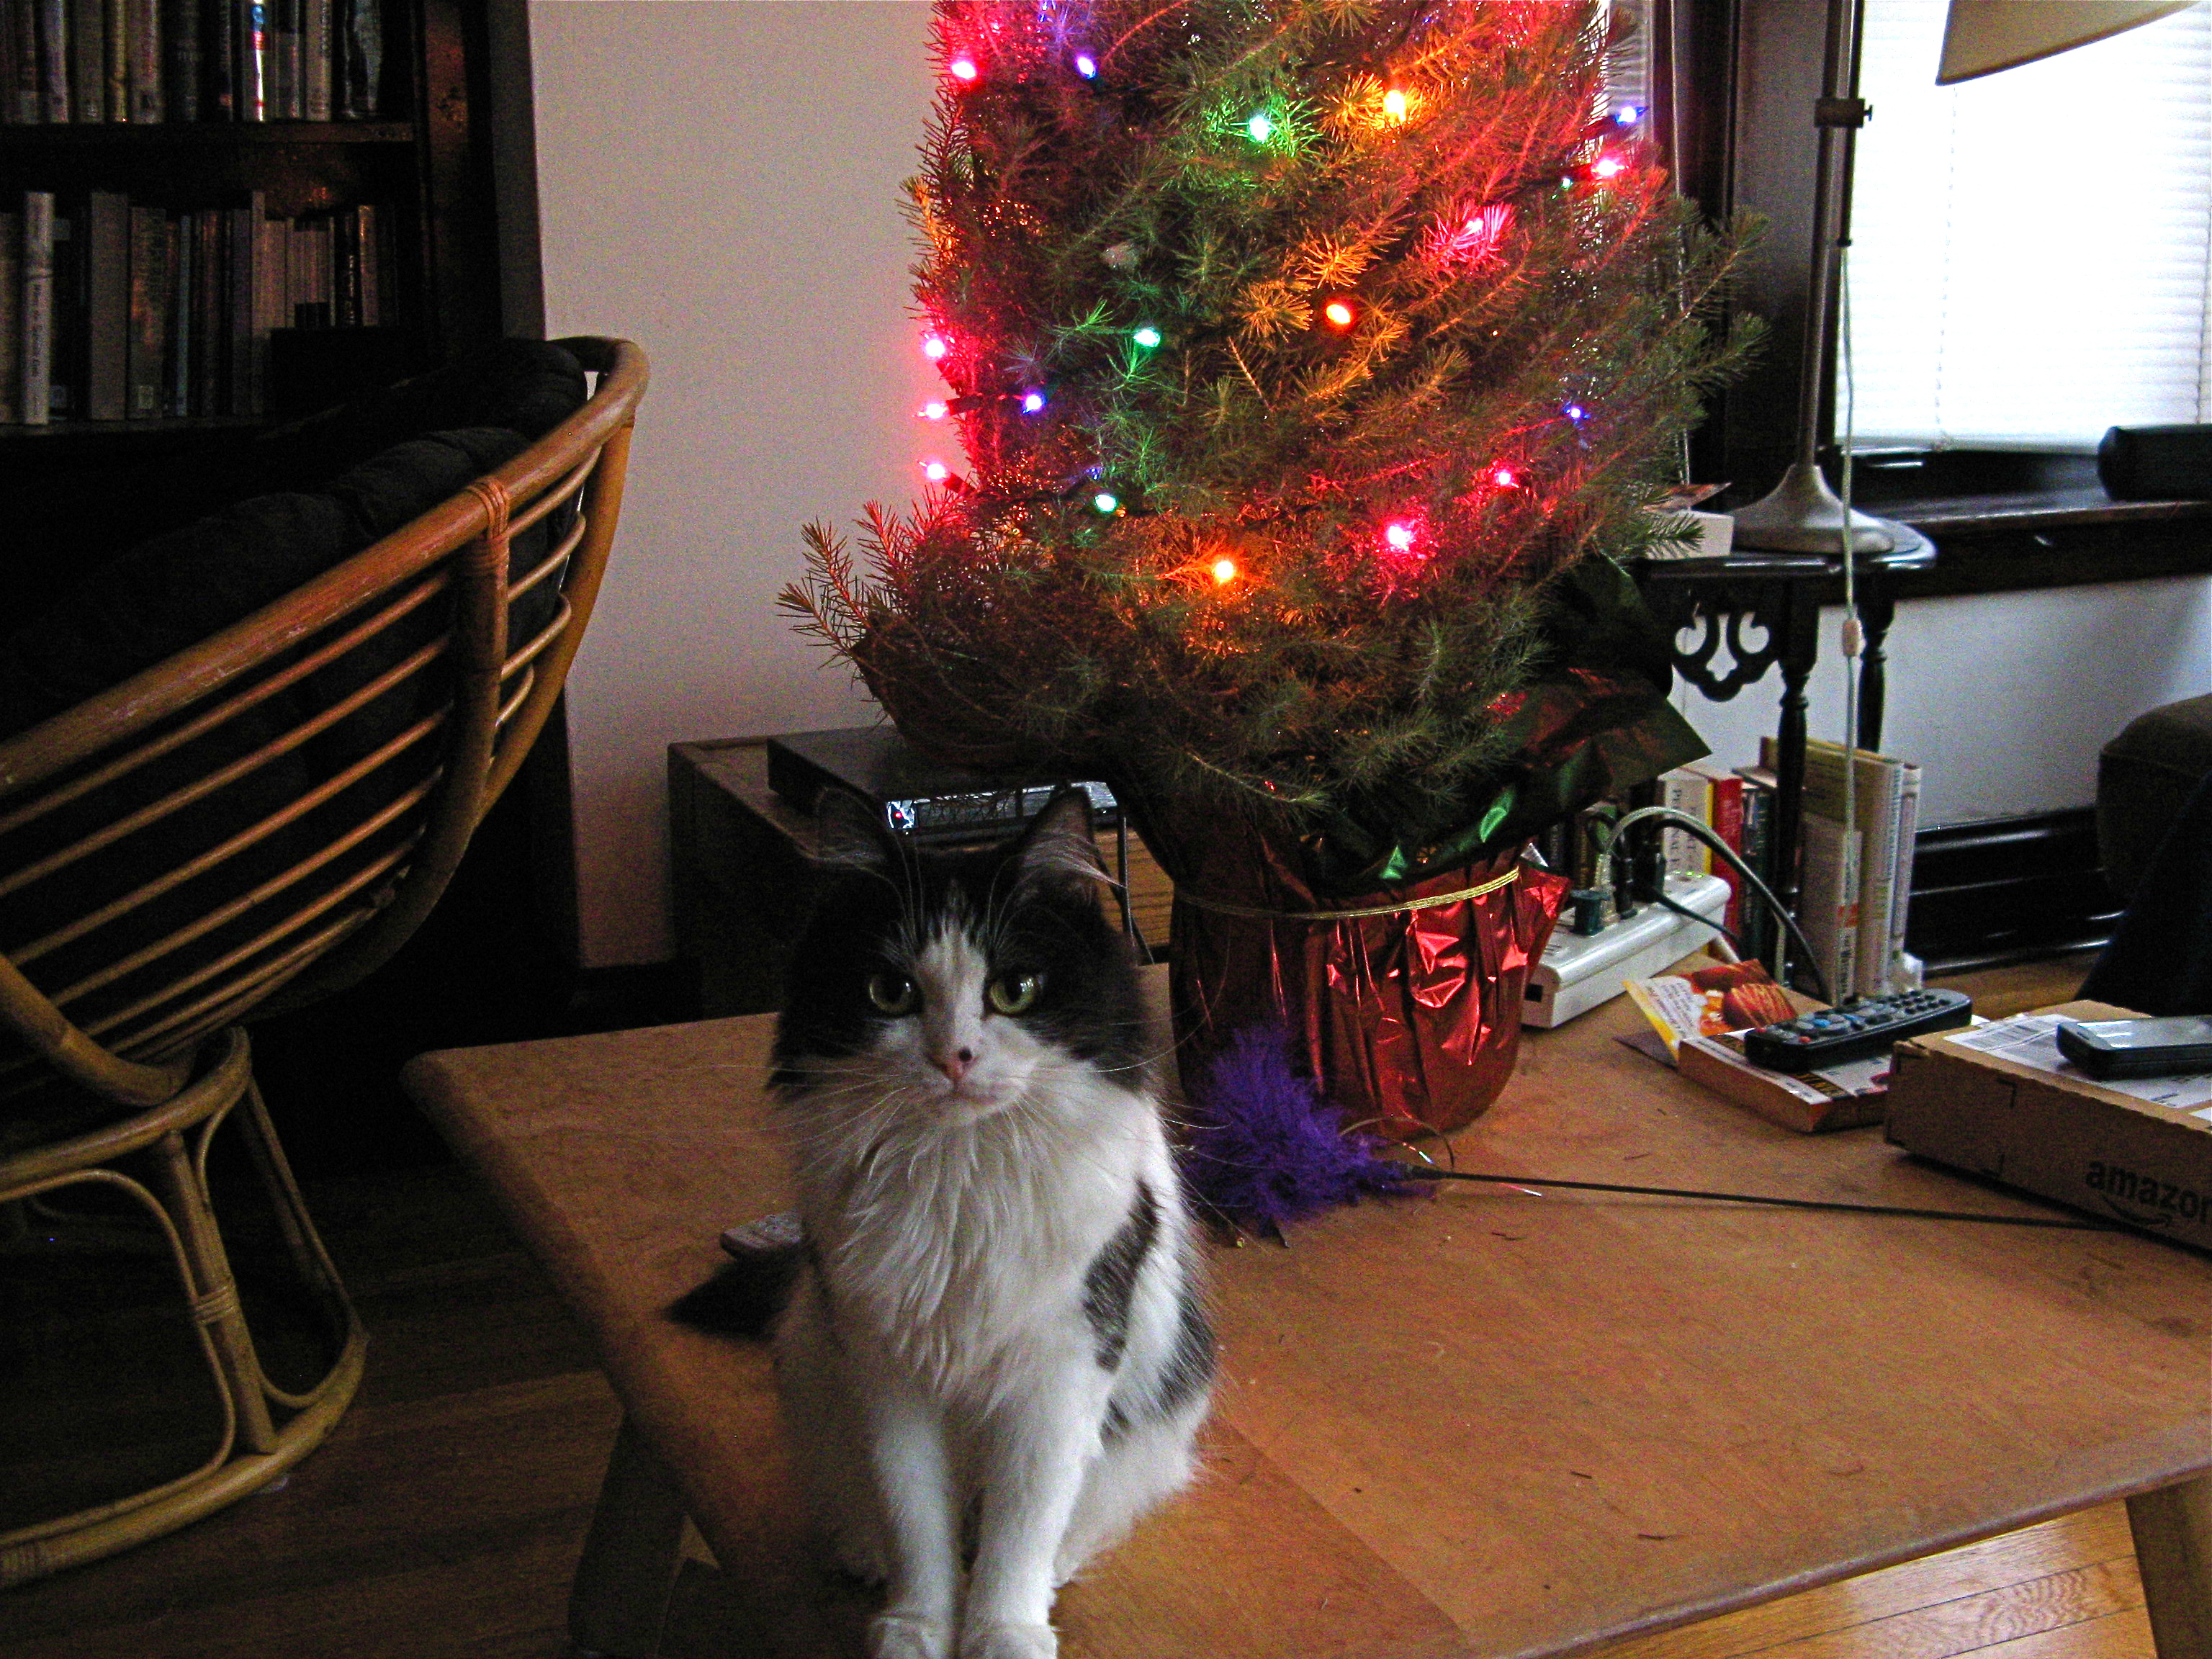 A smol black and white cat with a feather toy posing on a coffee table in front of a wee Christmas tree.